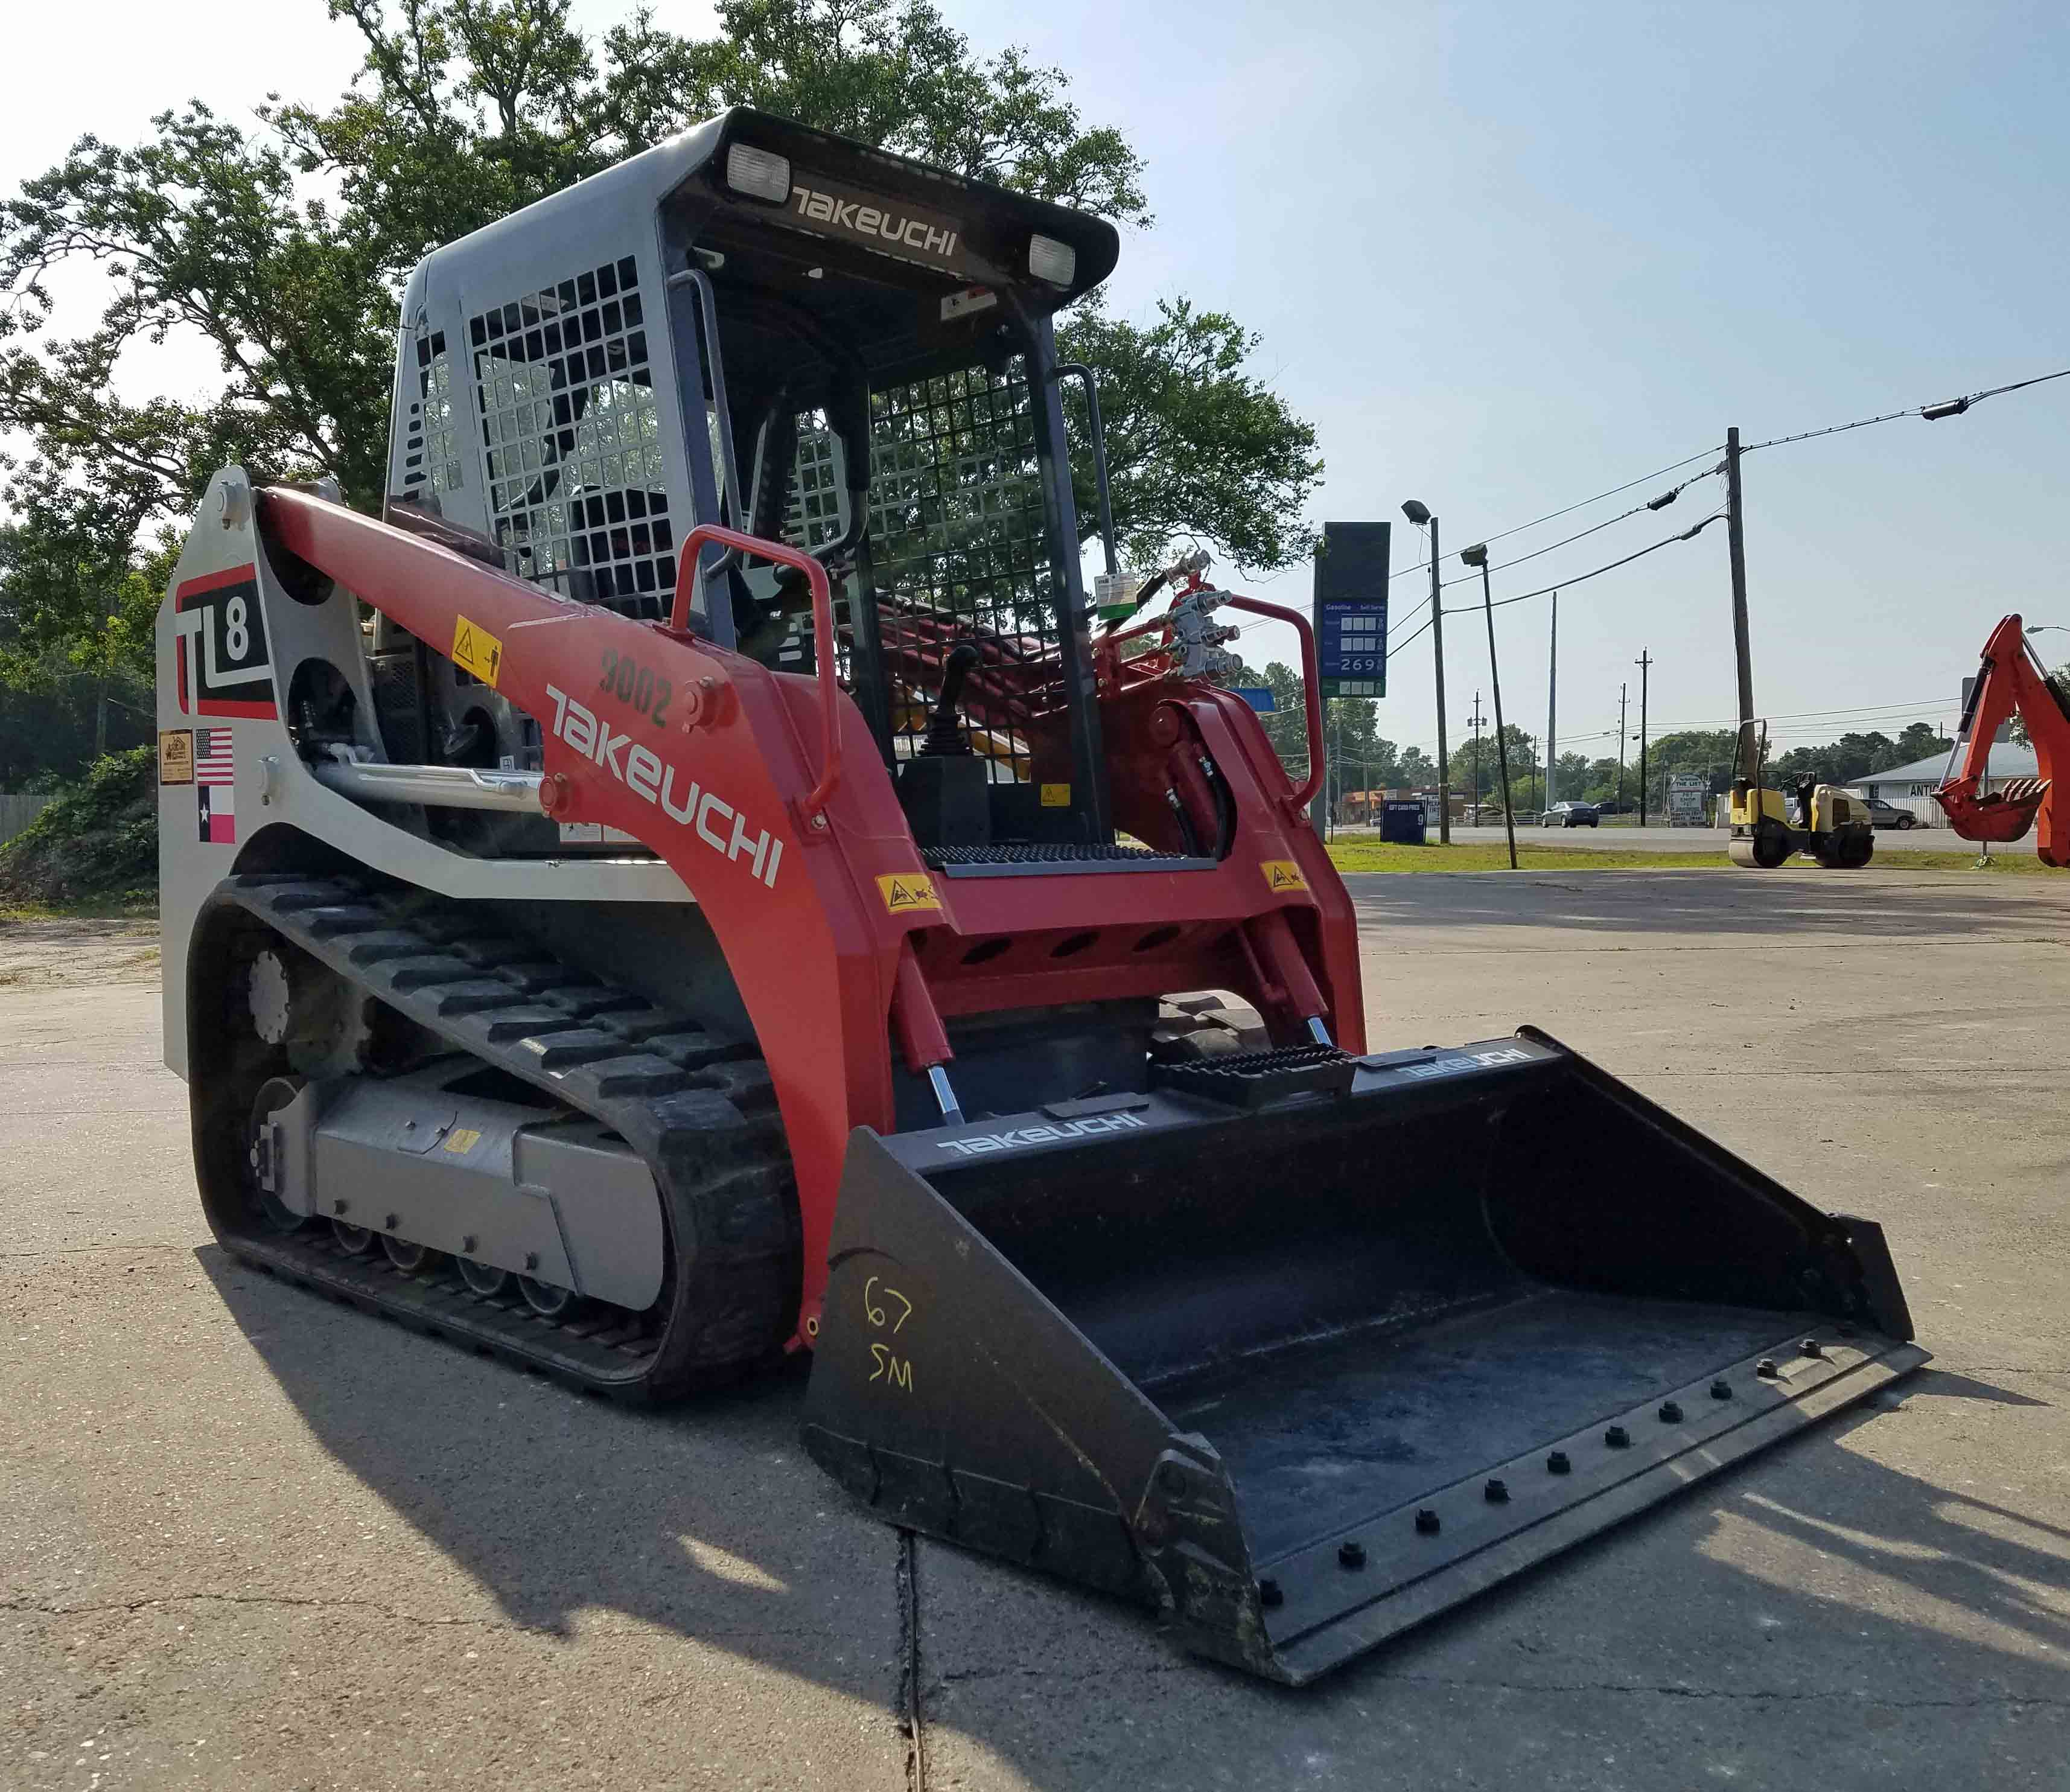 Bobcat Skid Steer & Attachments for Rent, Santa Fe, TX